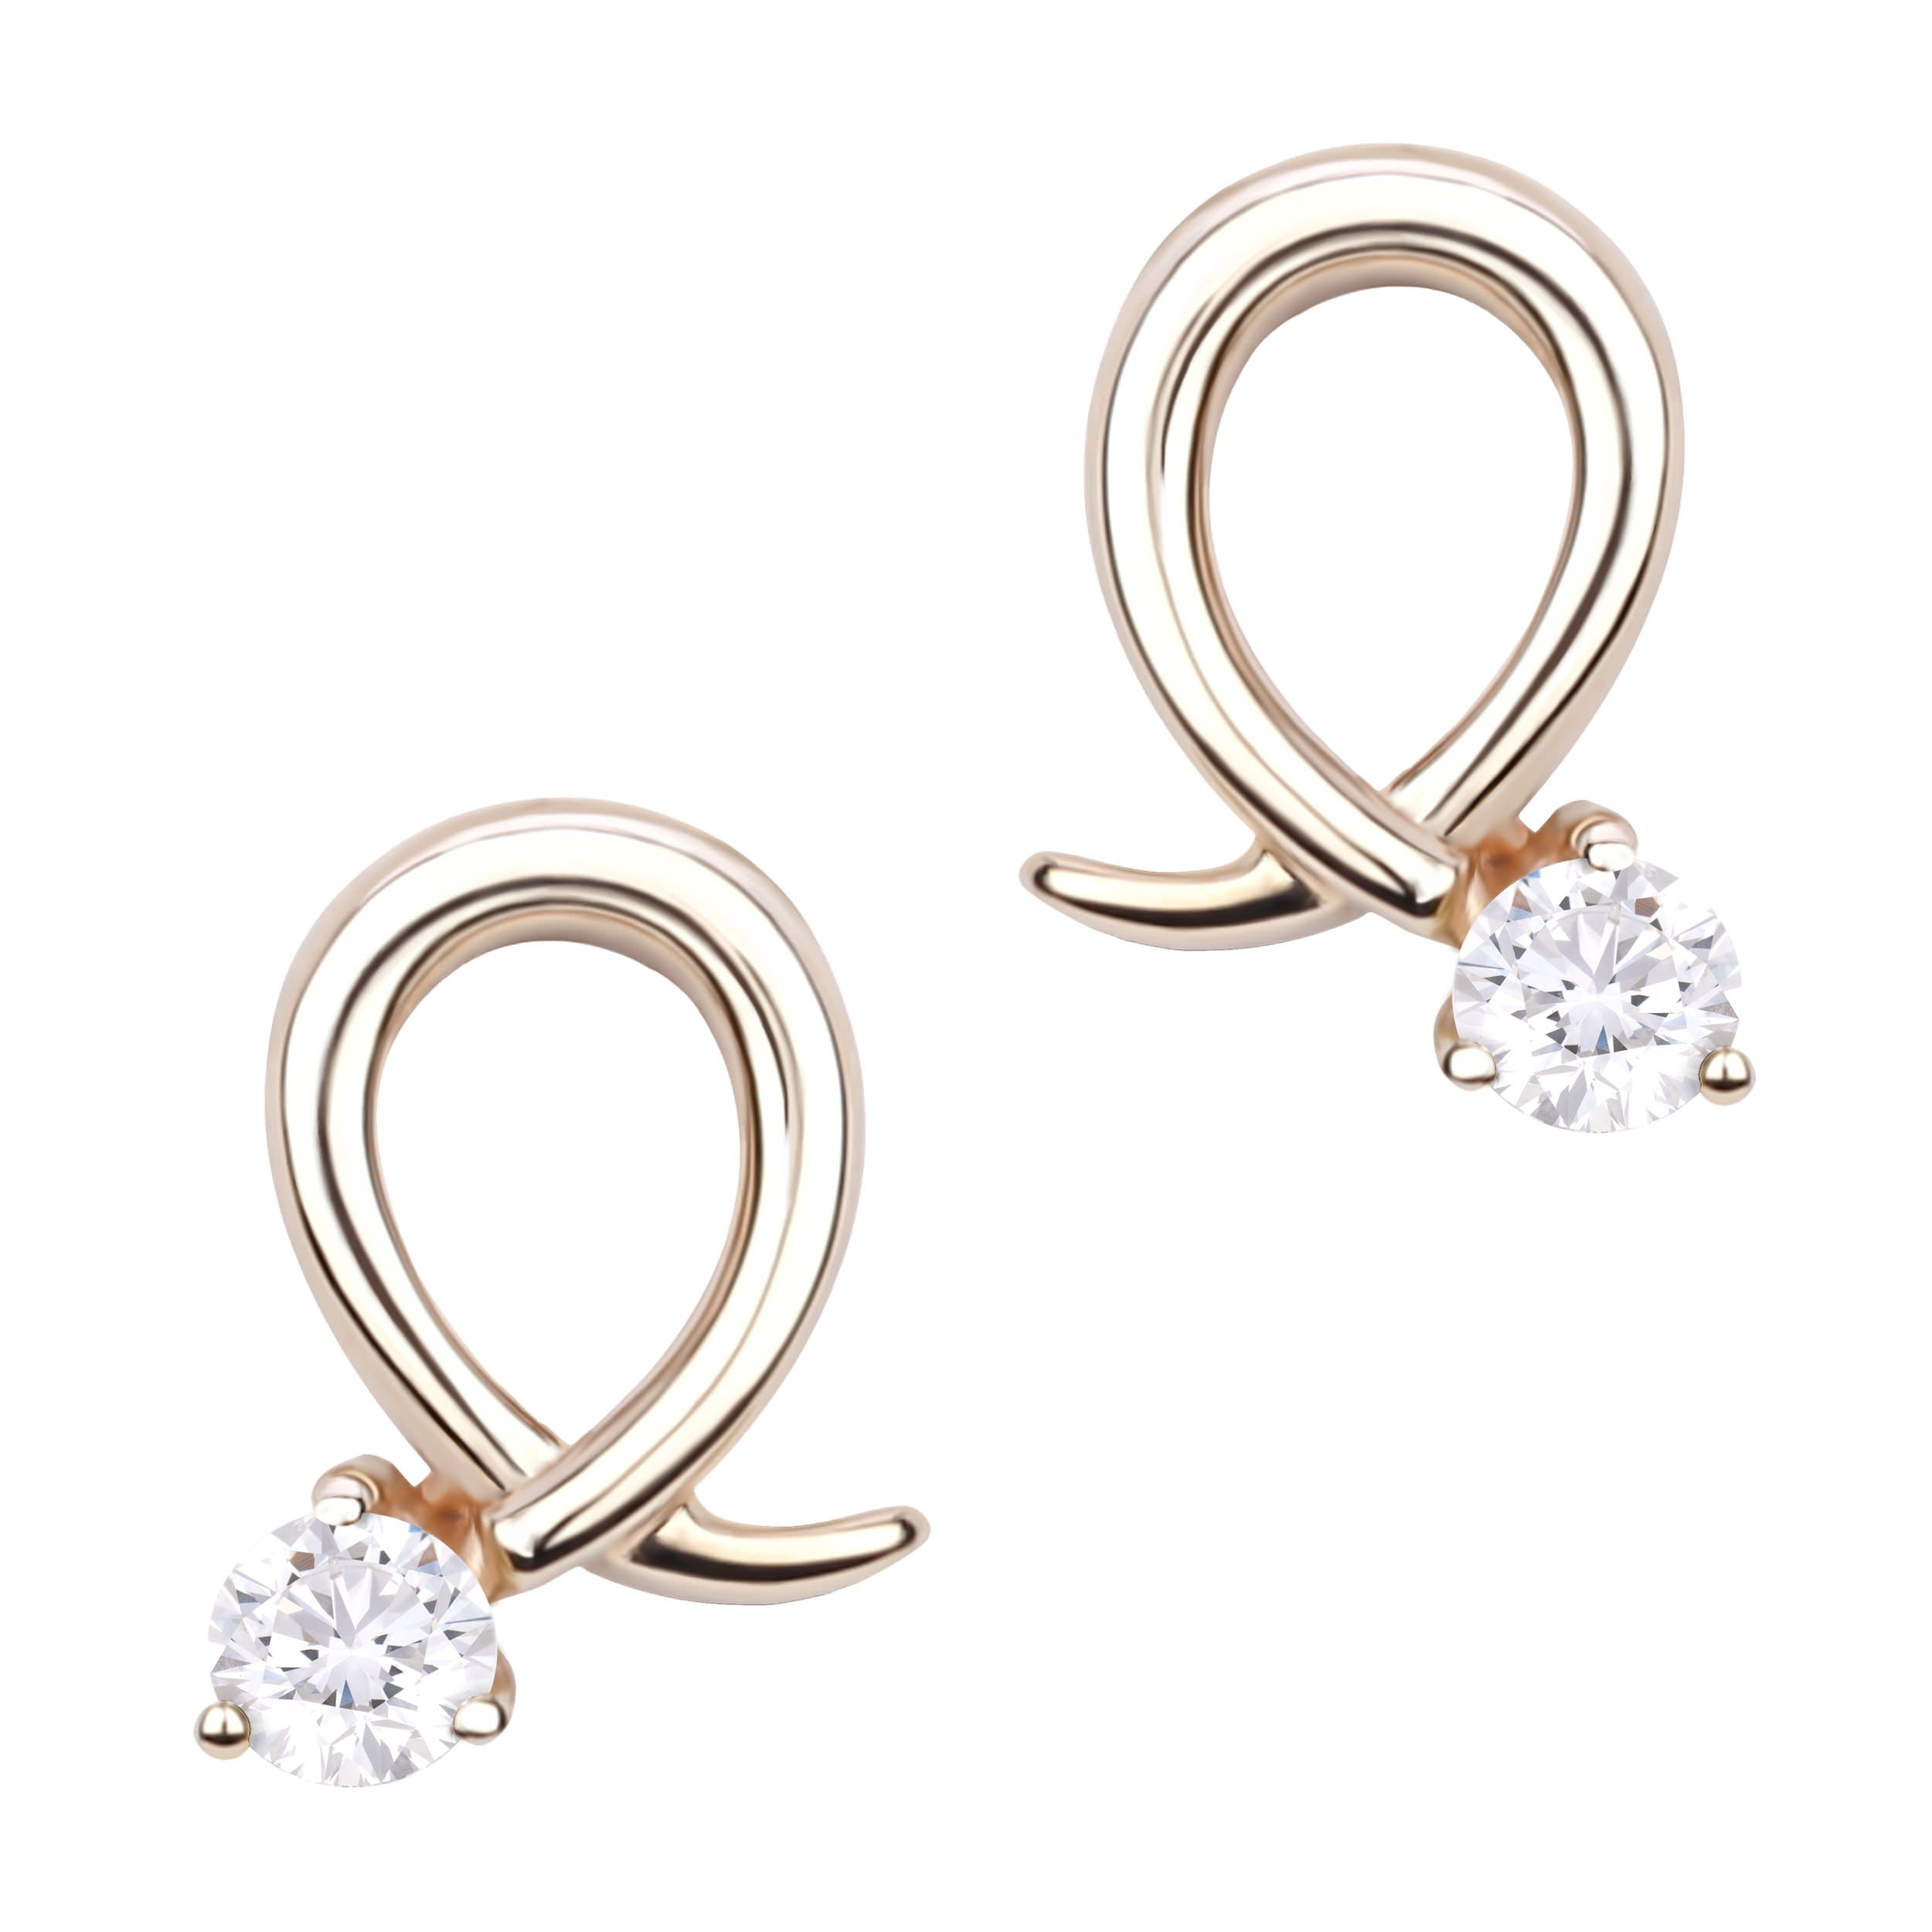 Diamond Stud Earrings SEC-E327 (Earrings)